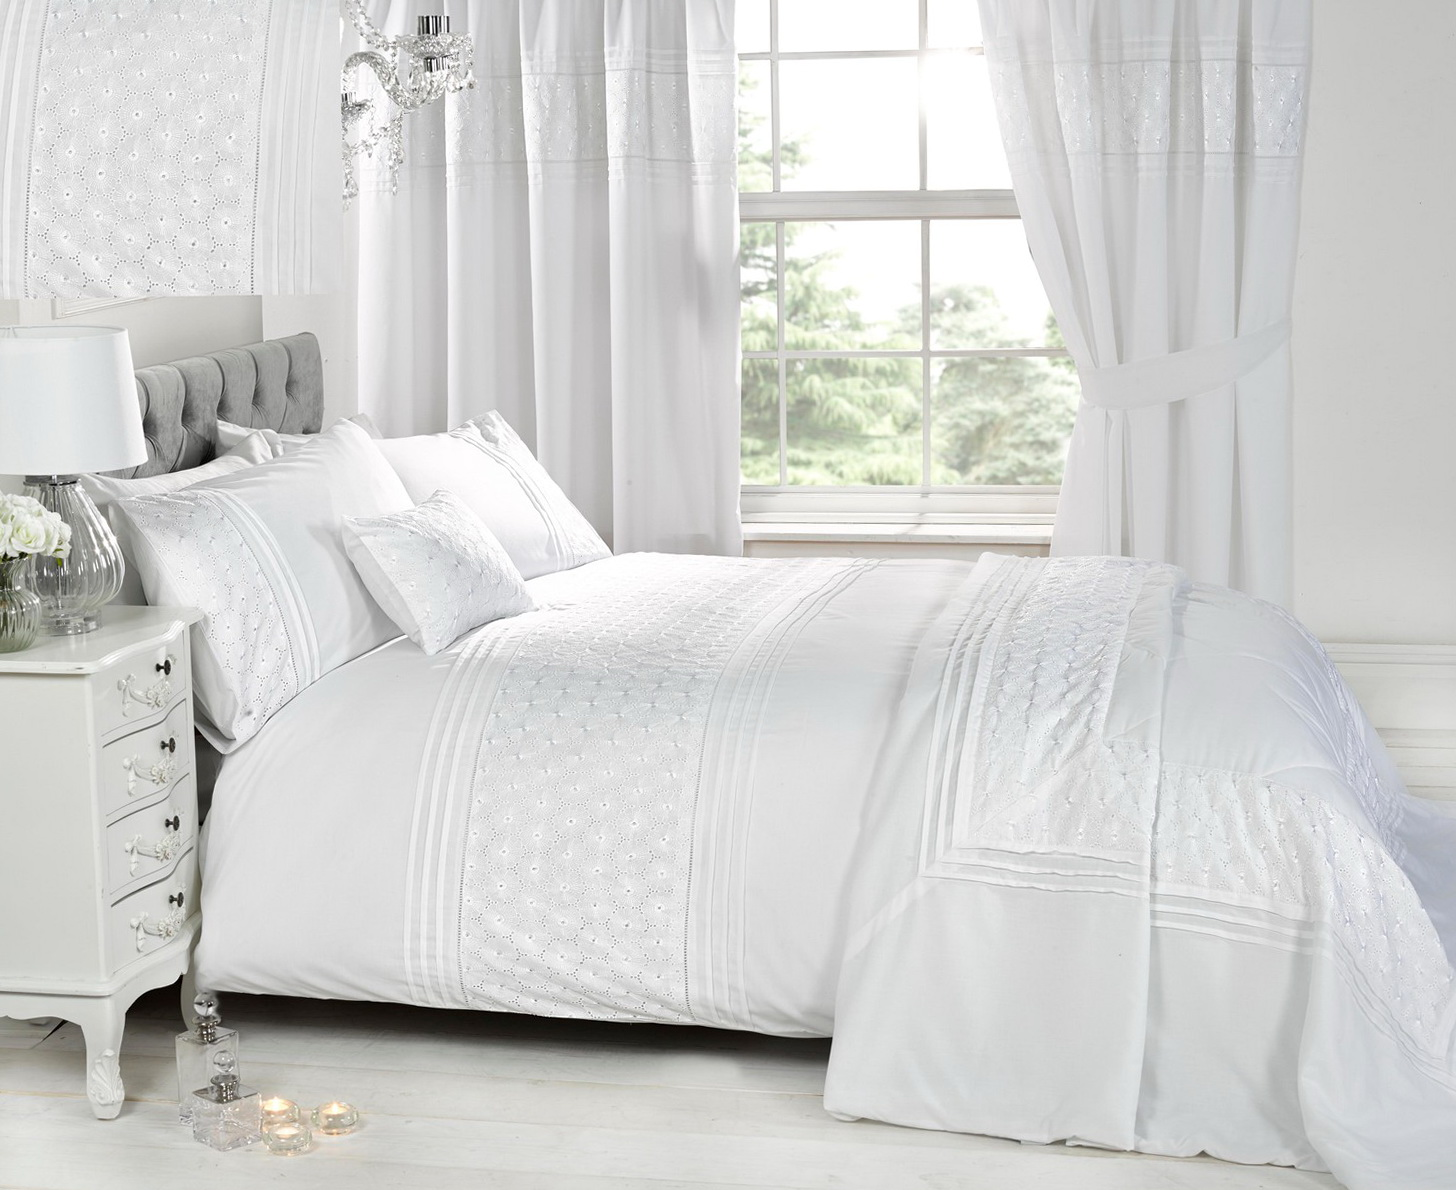 Bedding Sets With Matching Curtains